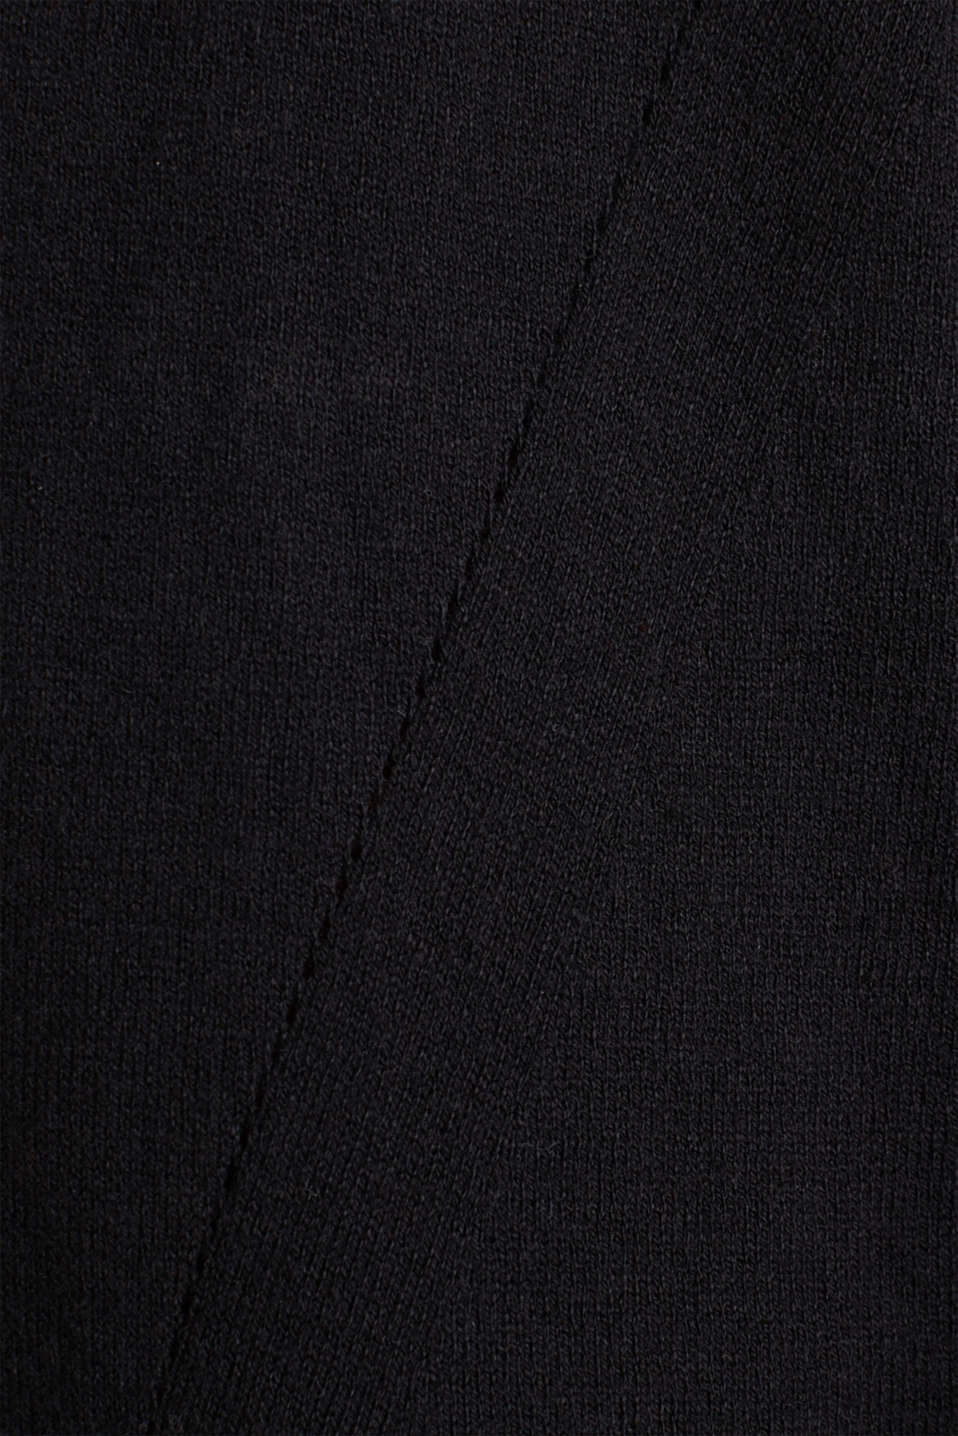 With linen: open cardigan with open-work pattern details, BLACK, detail image number 4